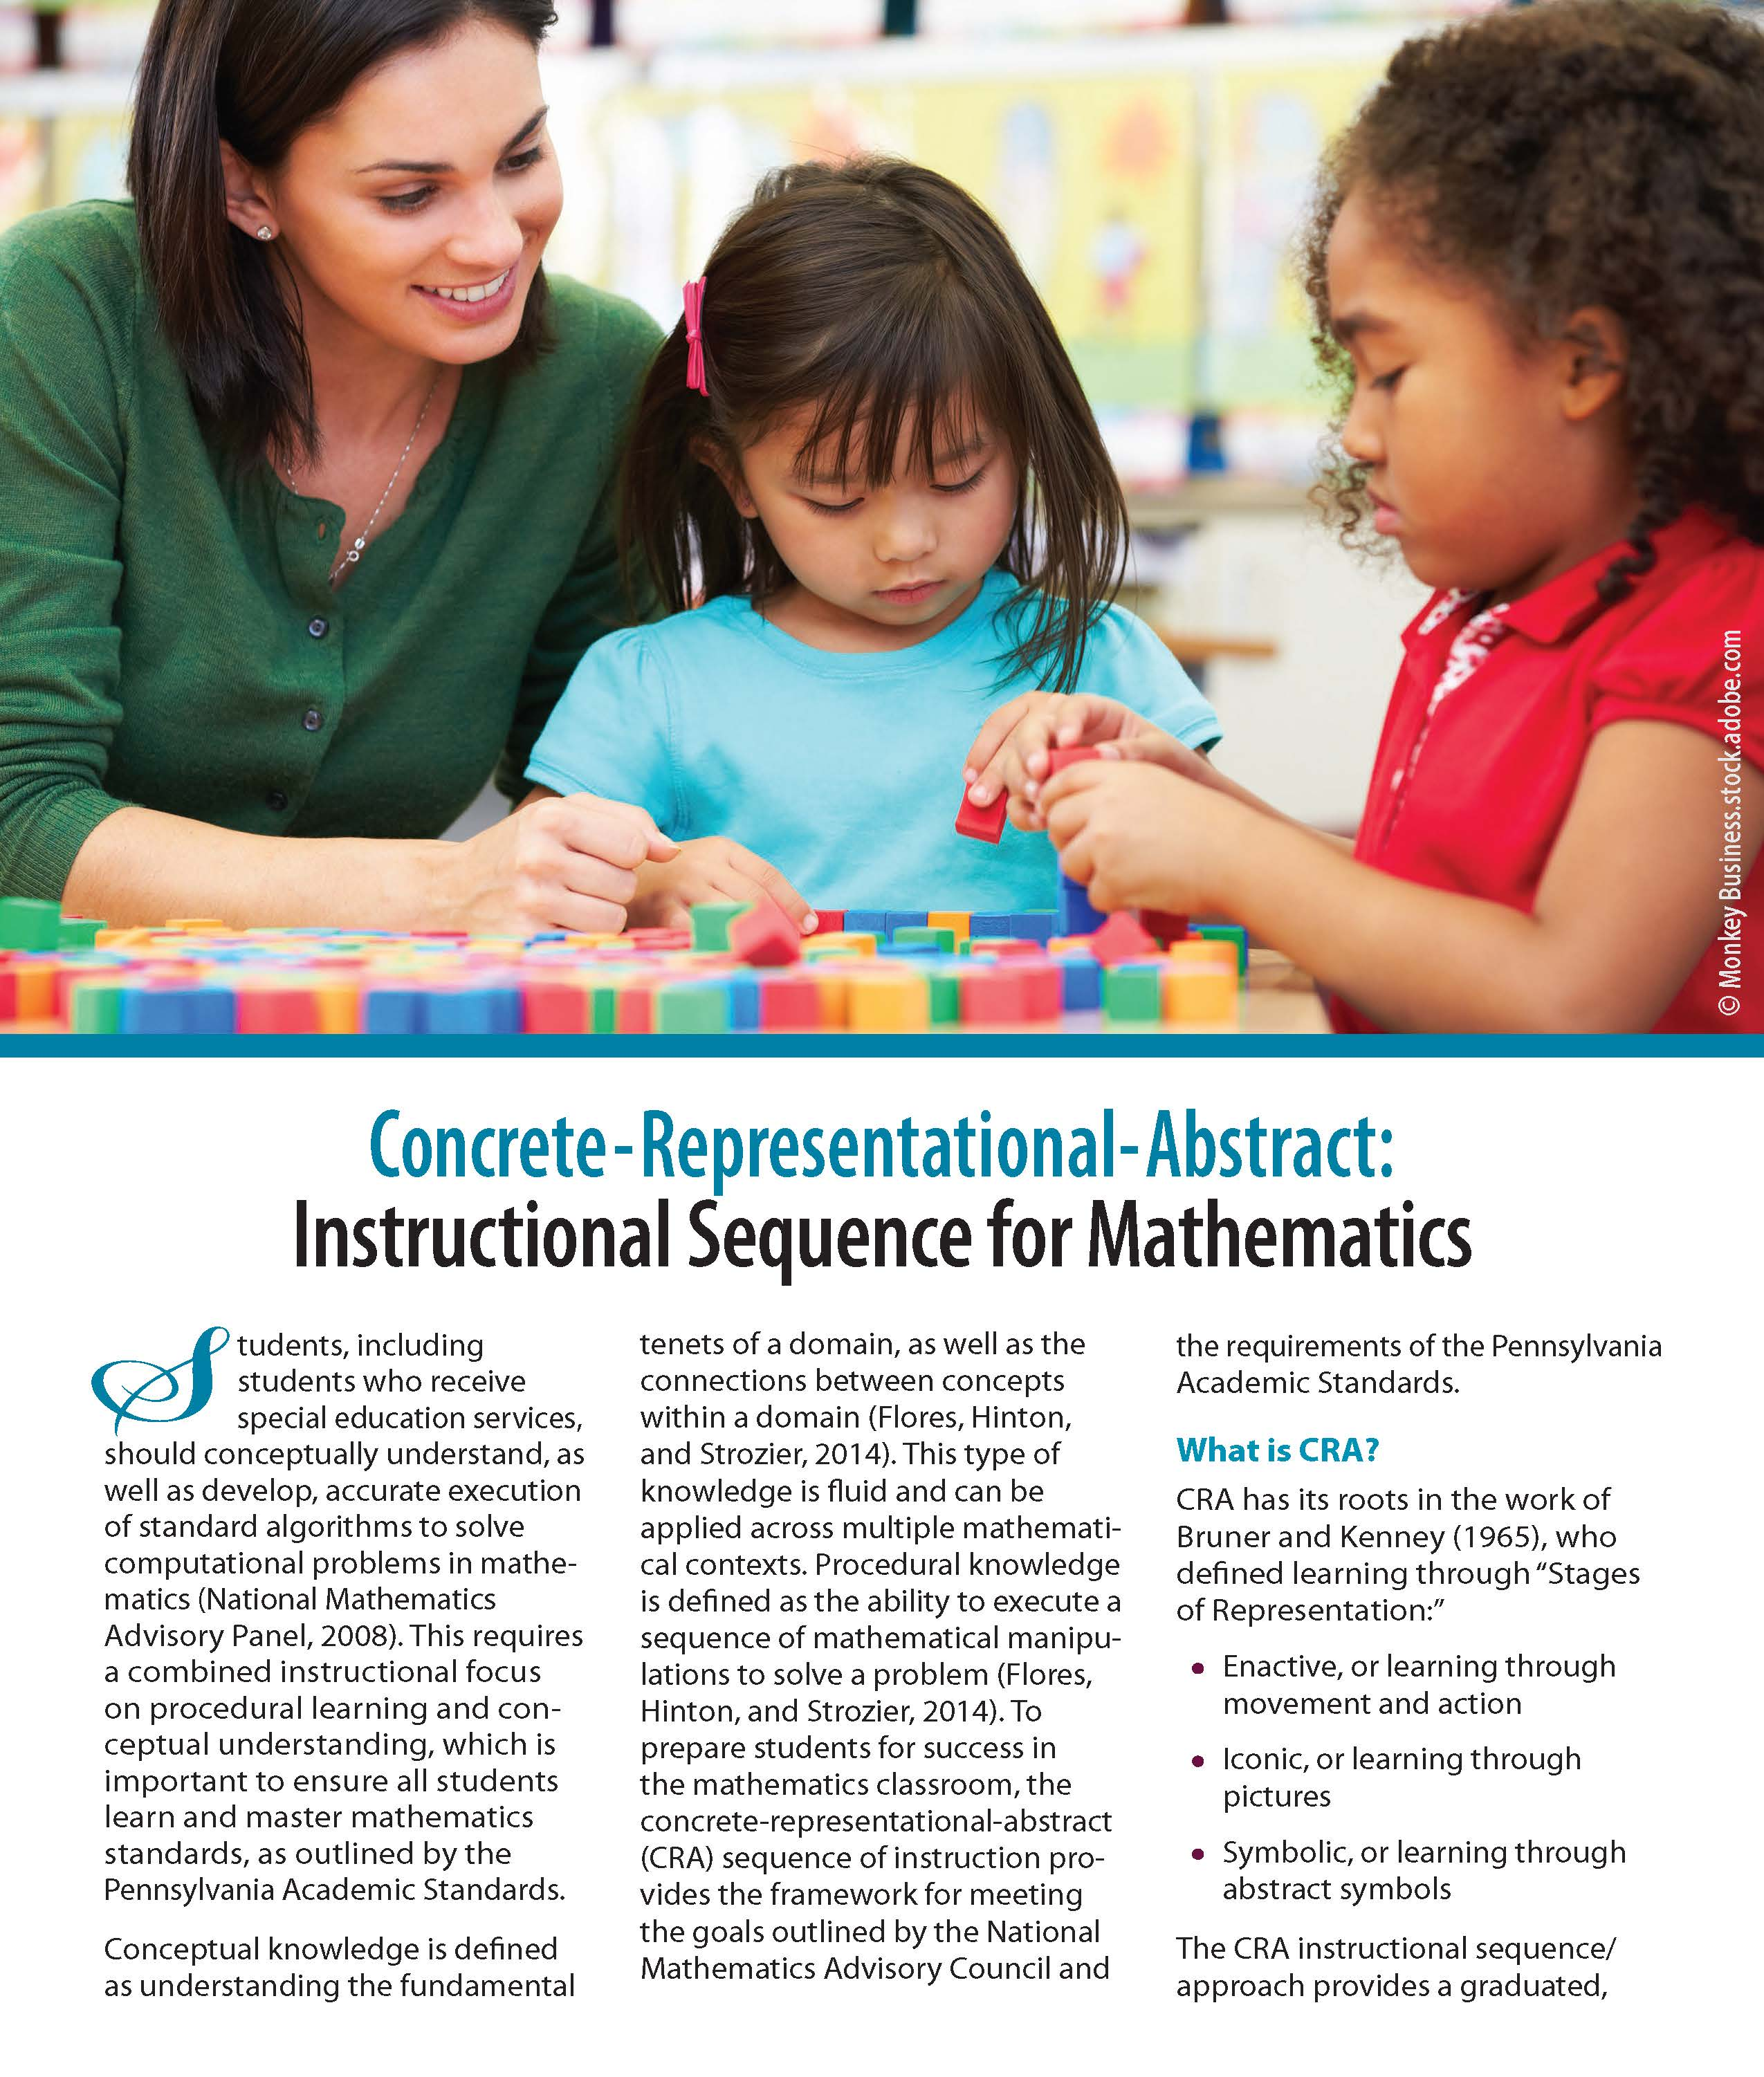 Concrete-Representational-Abstract (CRA): Instructional Sequence for Mathematics